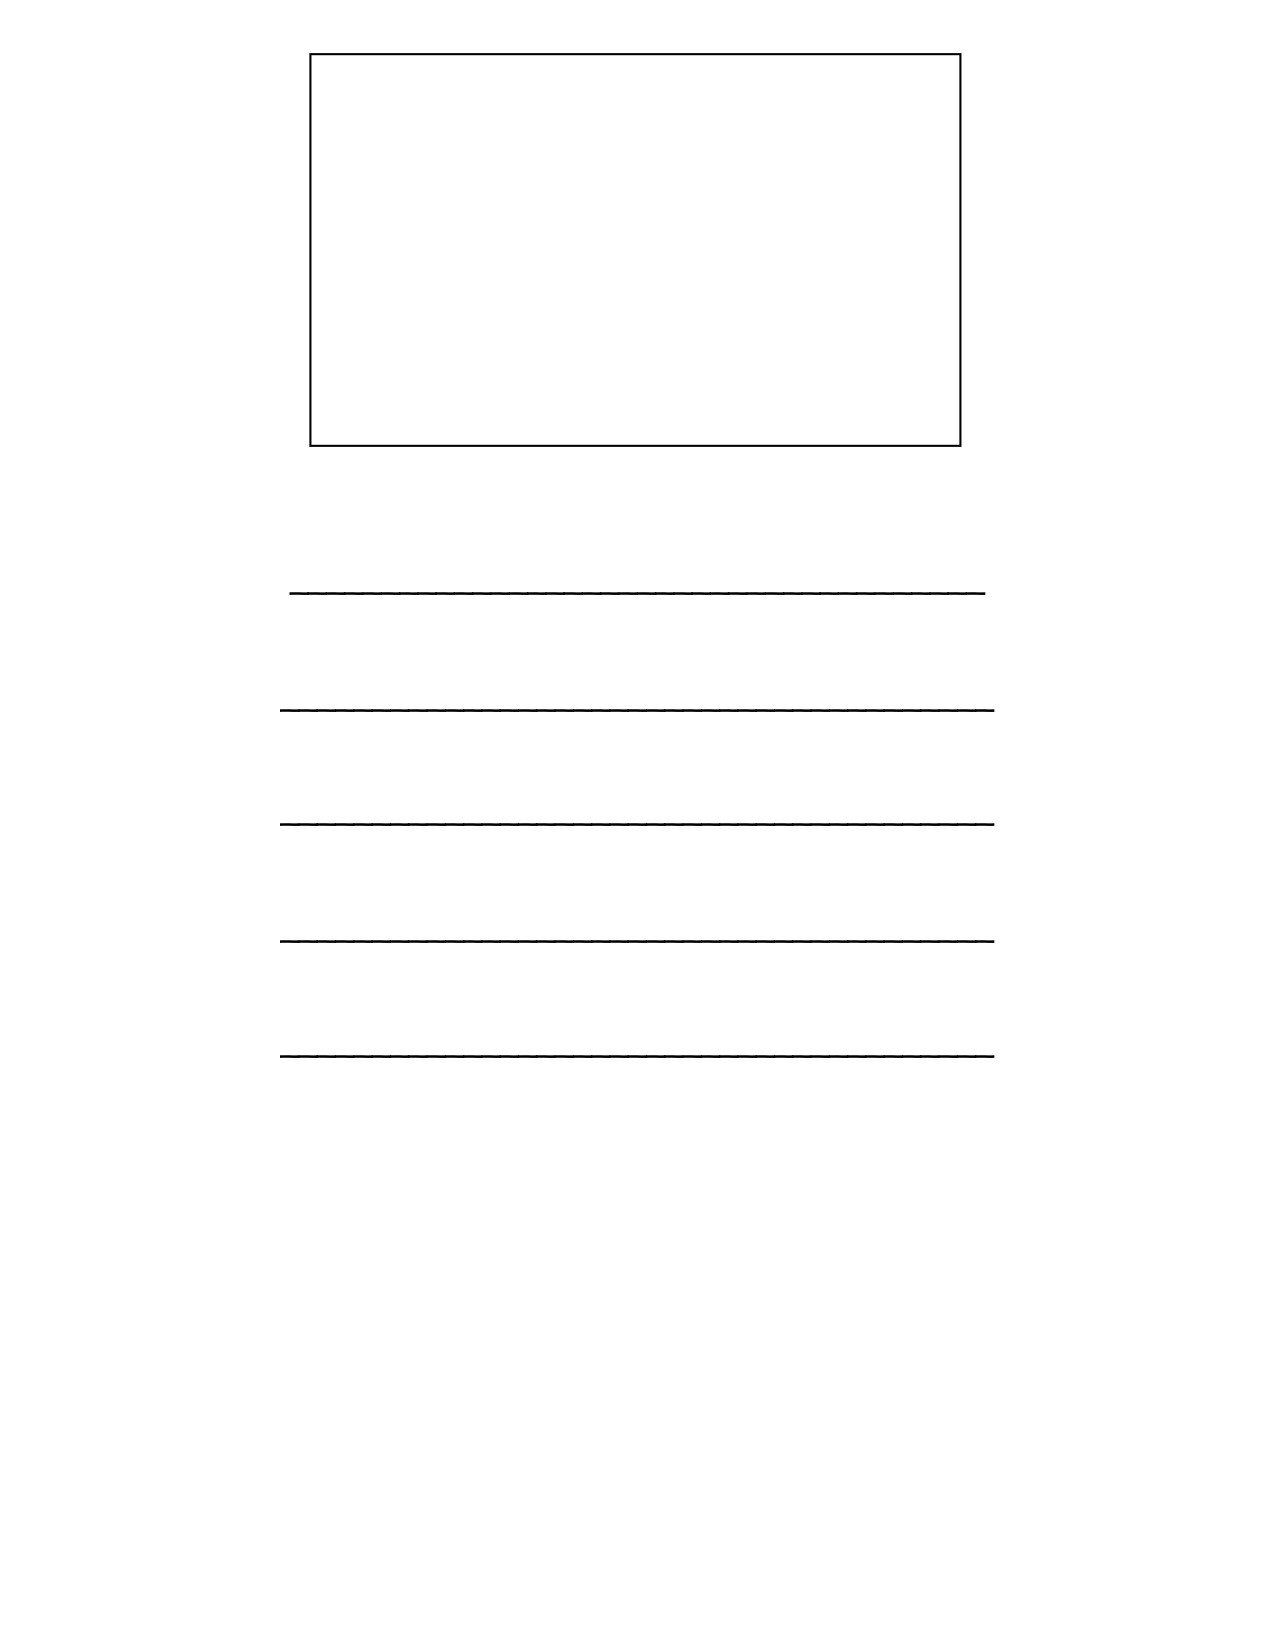 Printable pages of lined paper with drawing box - cncauto clinic